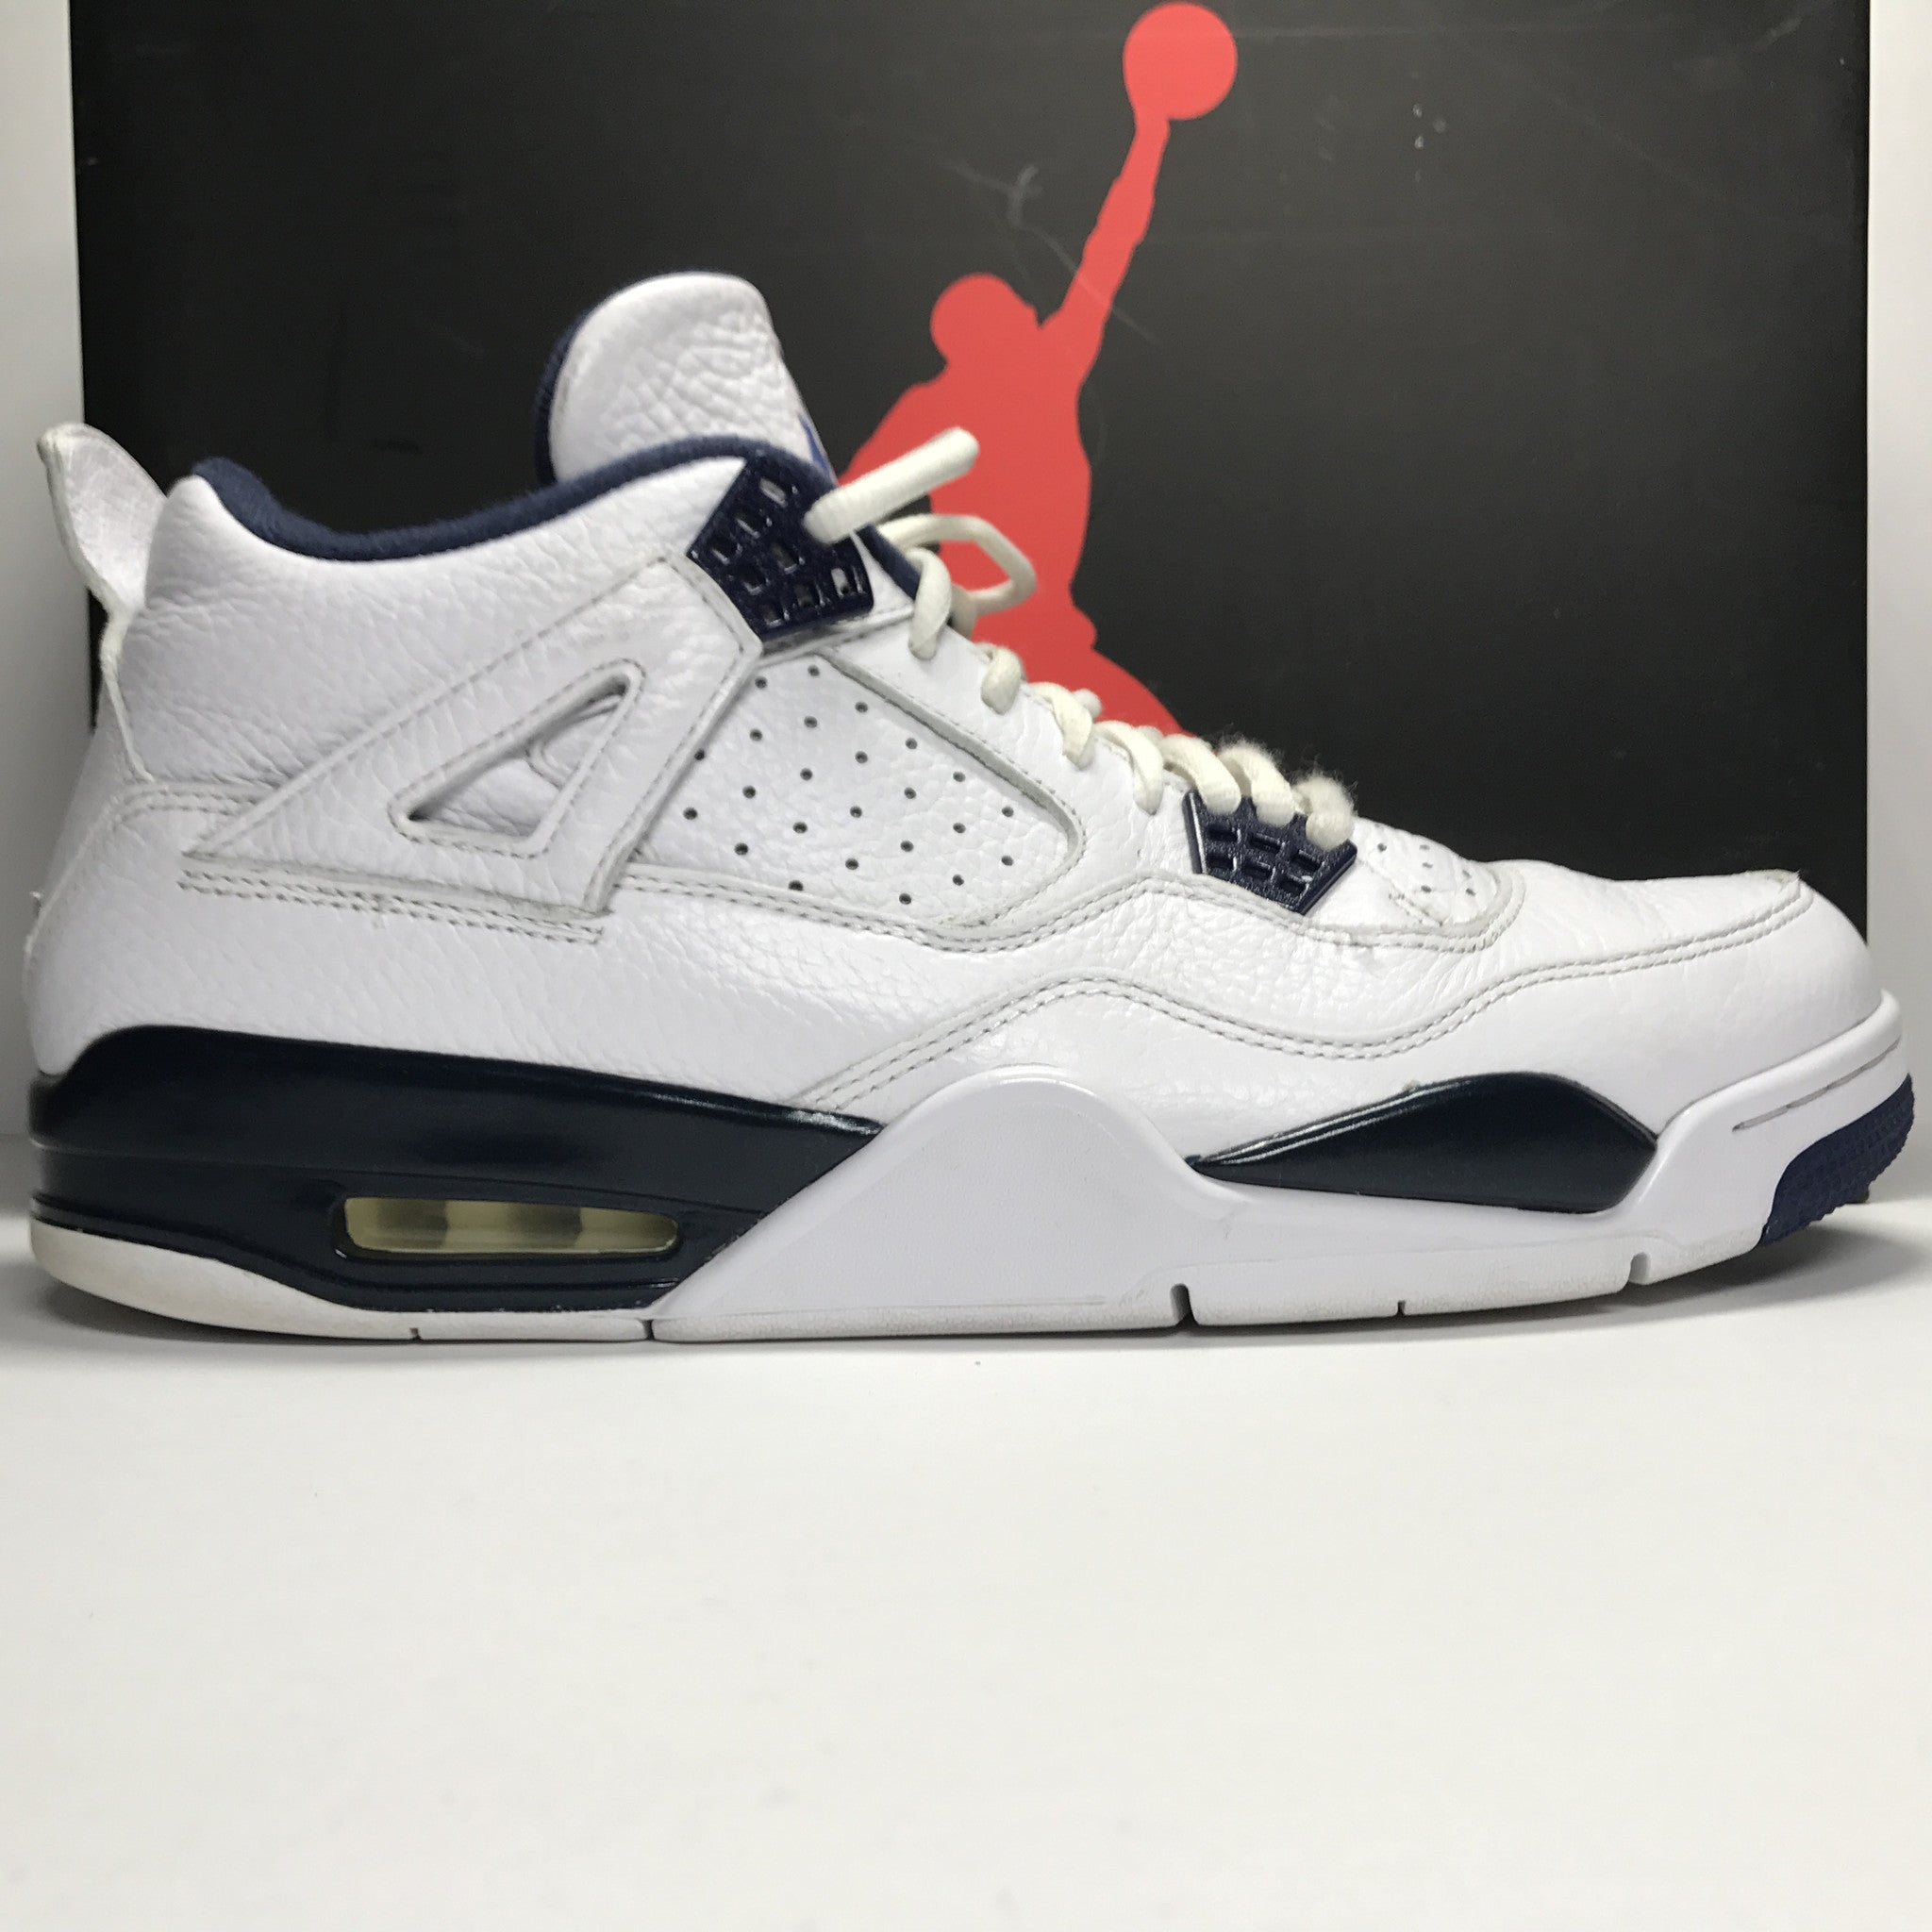 Nike Air Jordan 4 IV Retro LS Legend Blue Size 11.5